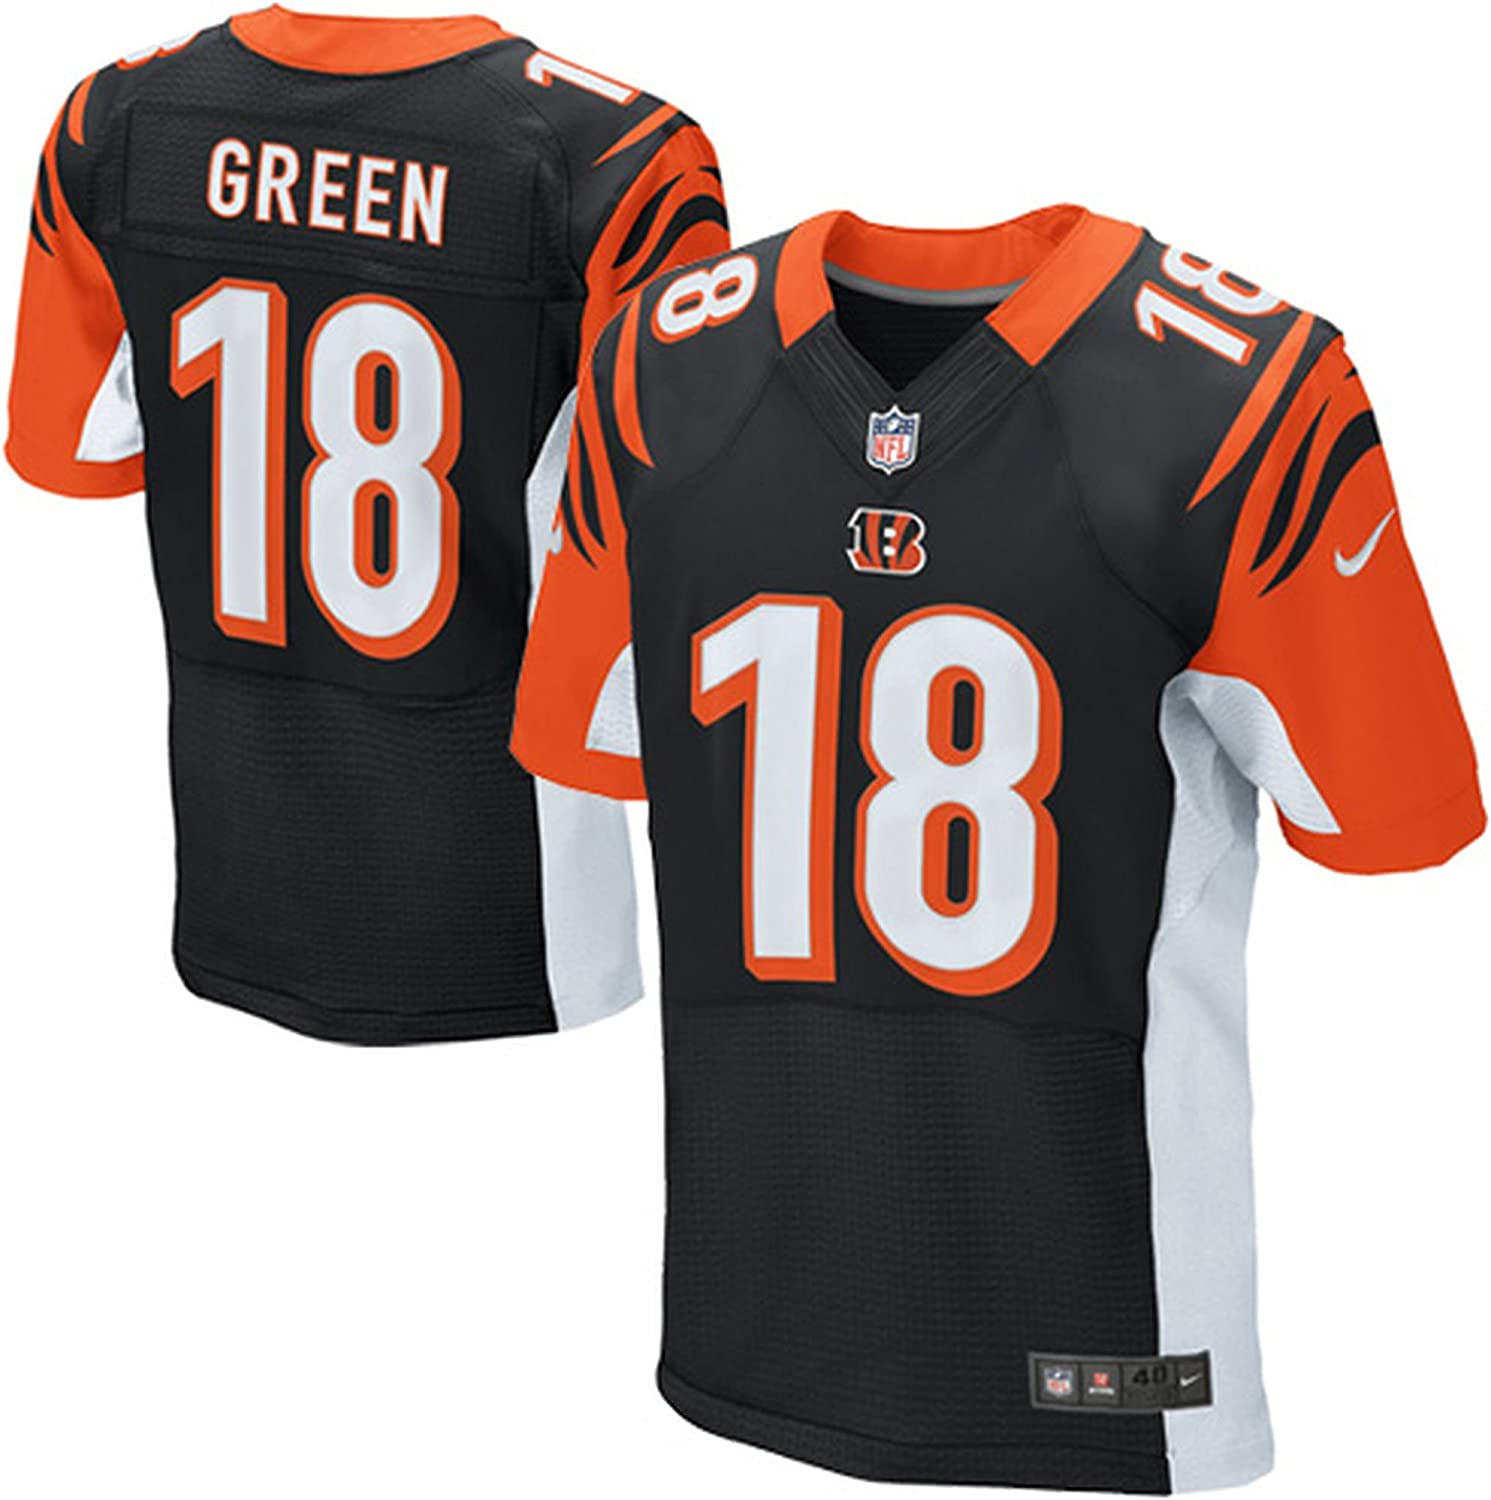 official bengals jersey